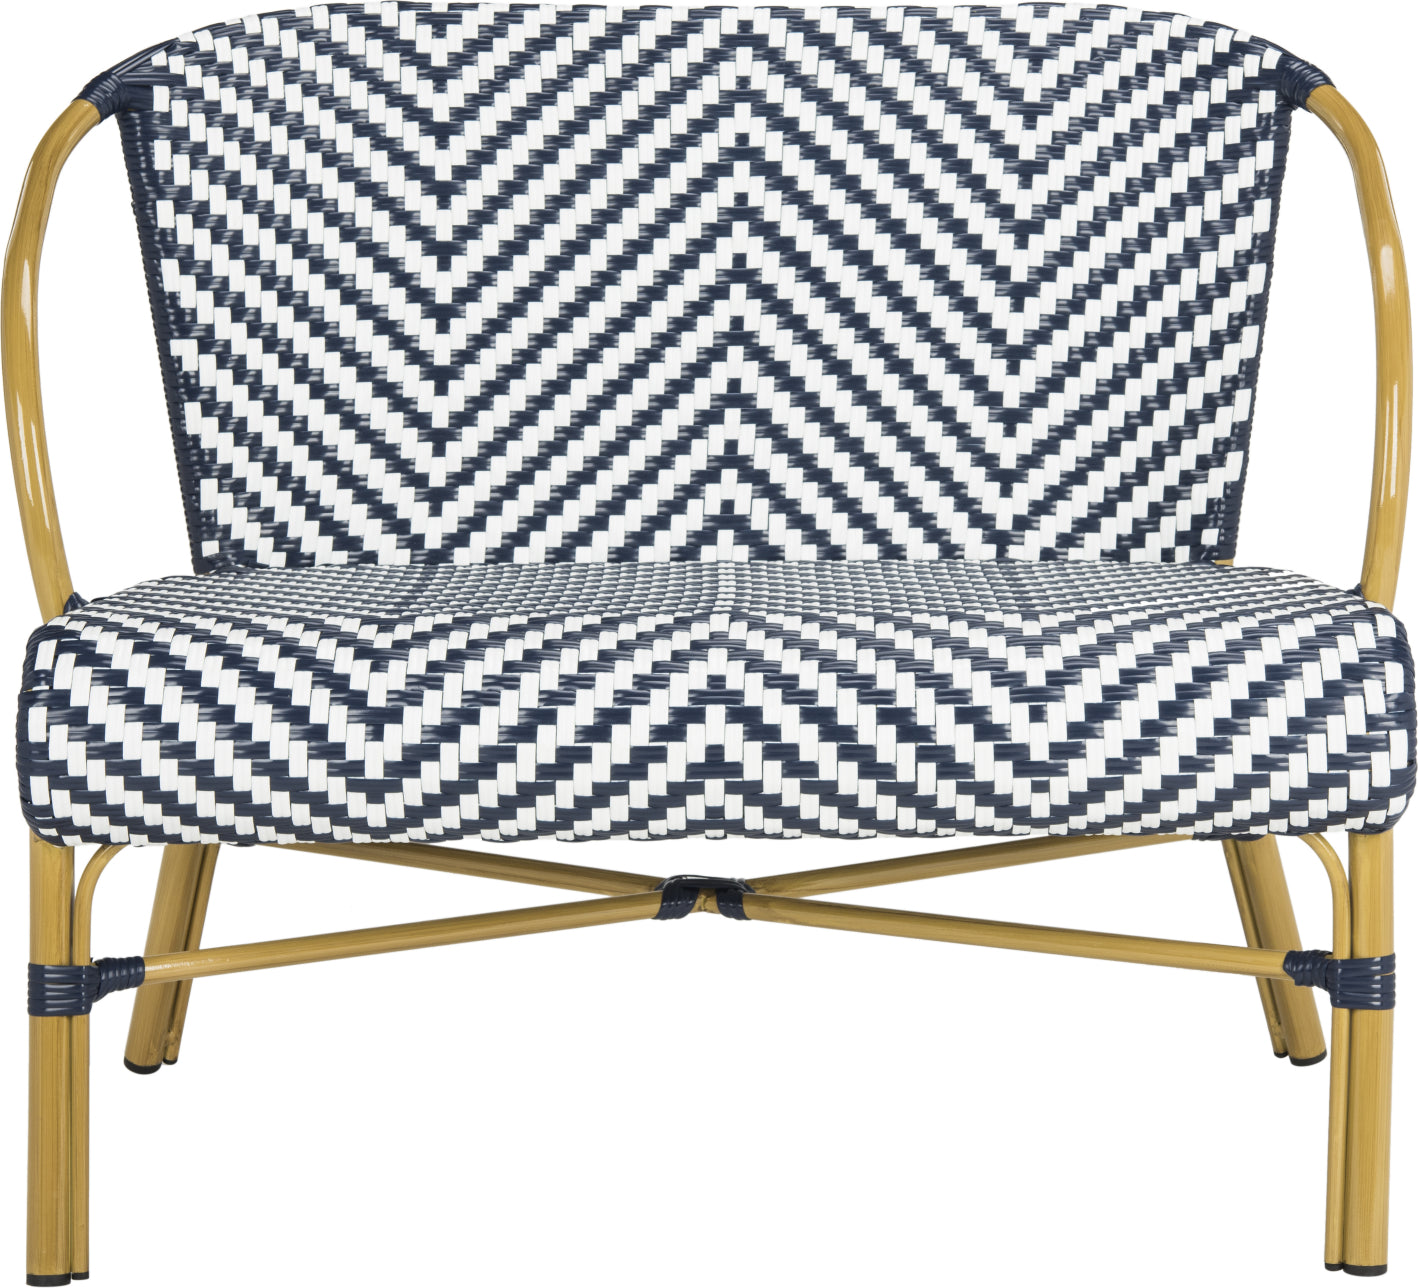 Safavieh Dandra Herringbone Rattan Settee Navy/White Furniture main image